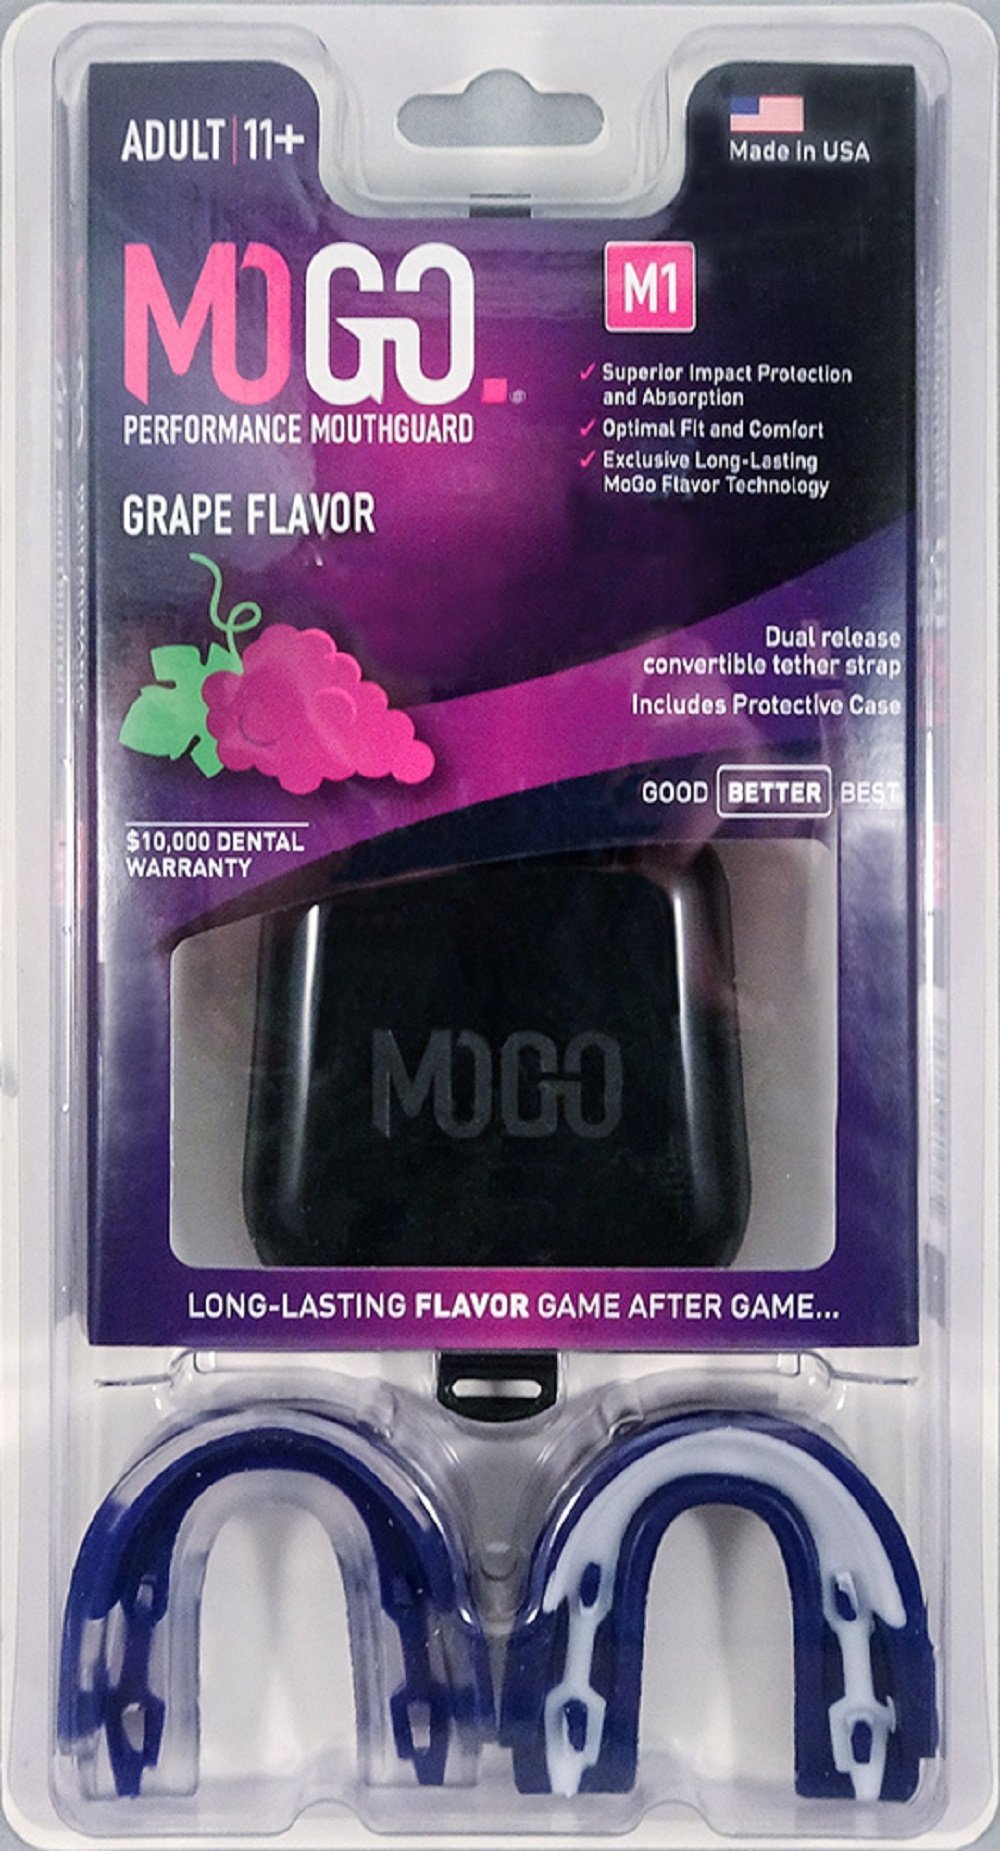 MOGO. Flavored 2 Pack Mouth Guards - Adult Sports Mouthguard for Ages 11 and Up - Mouthpiece for MMA, Football and Lacrosse - Tether Strap, Fitting Instructions and Carry Case (Grape) by MOGO. (Image #1)